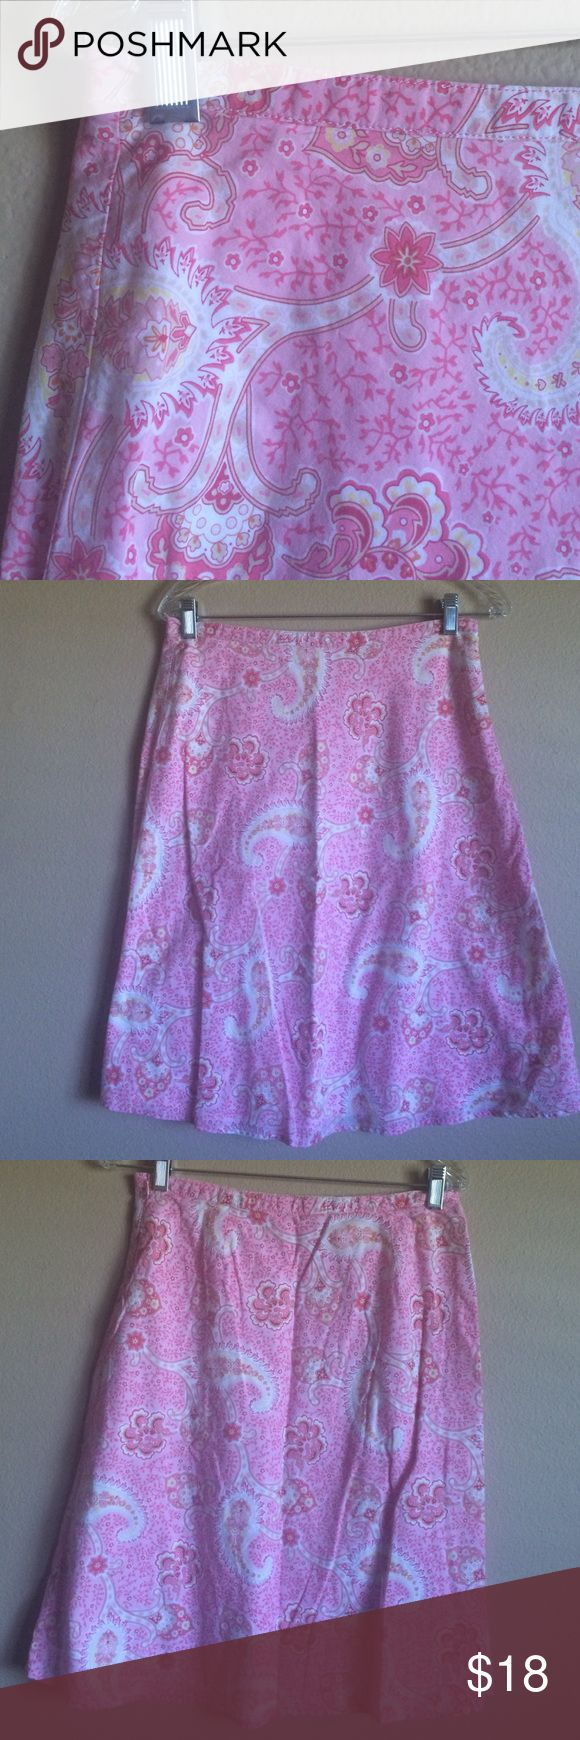 🎀Fun & Flirty Tommy Hilfiger Pink Paisley Skirt 🎀Fun & Flirty Tommy Hilfiger Pink Yellow and White Paisley Skirt Fully Lined  Side Zipper Closure Size 4  24inches length Tommy Hilfiger Skirts